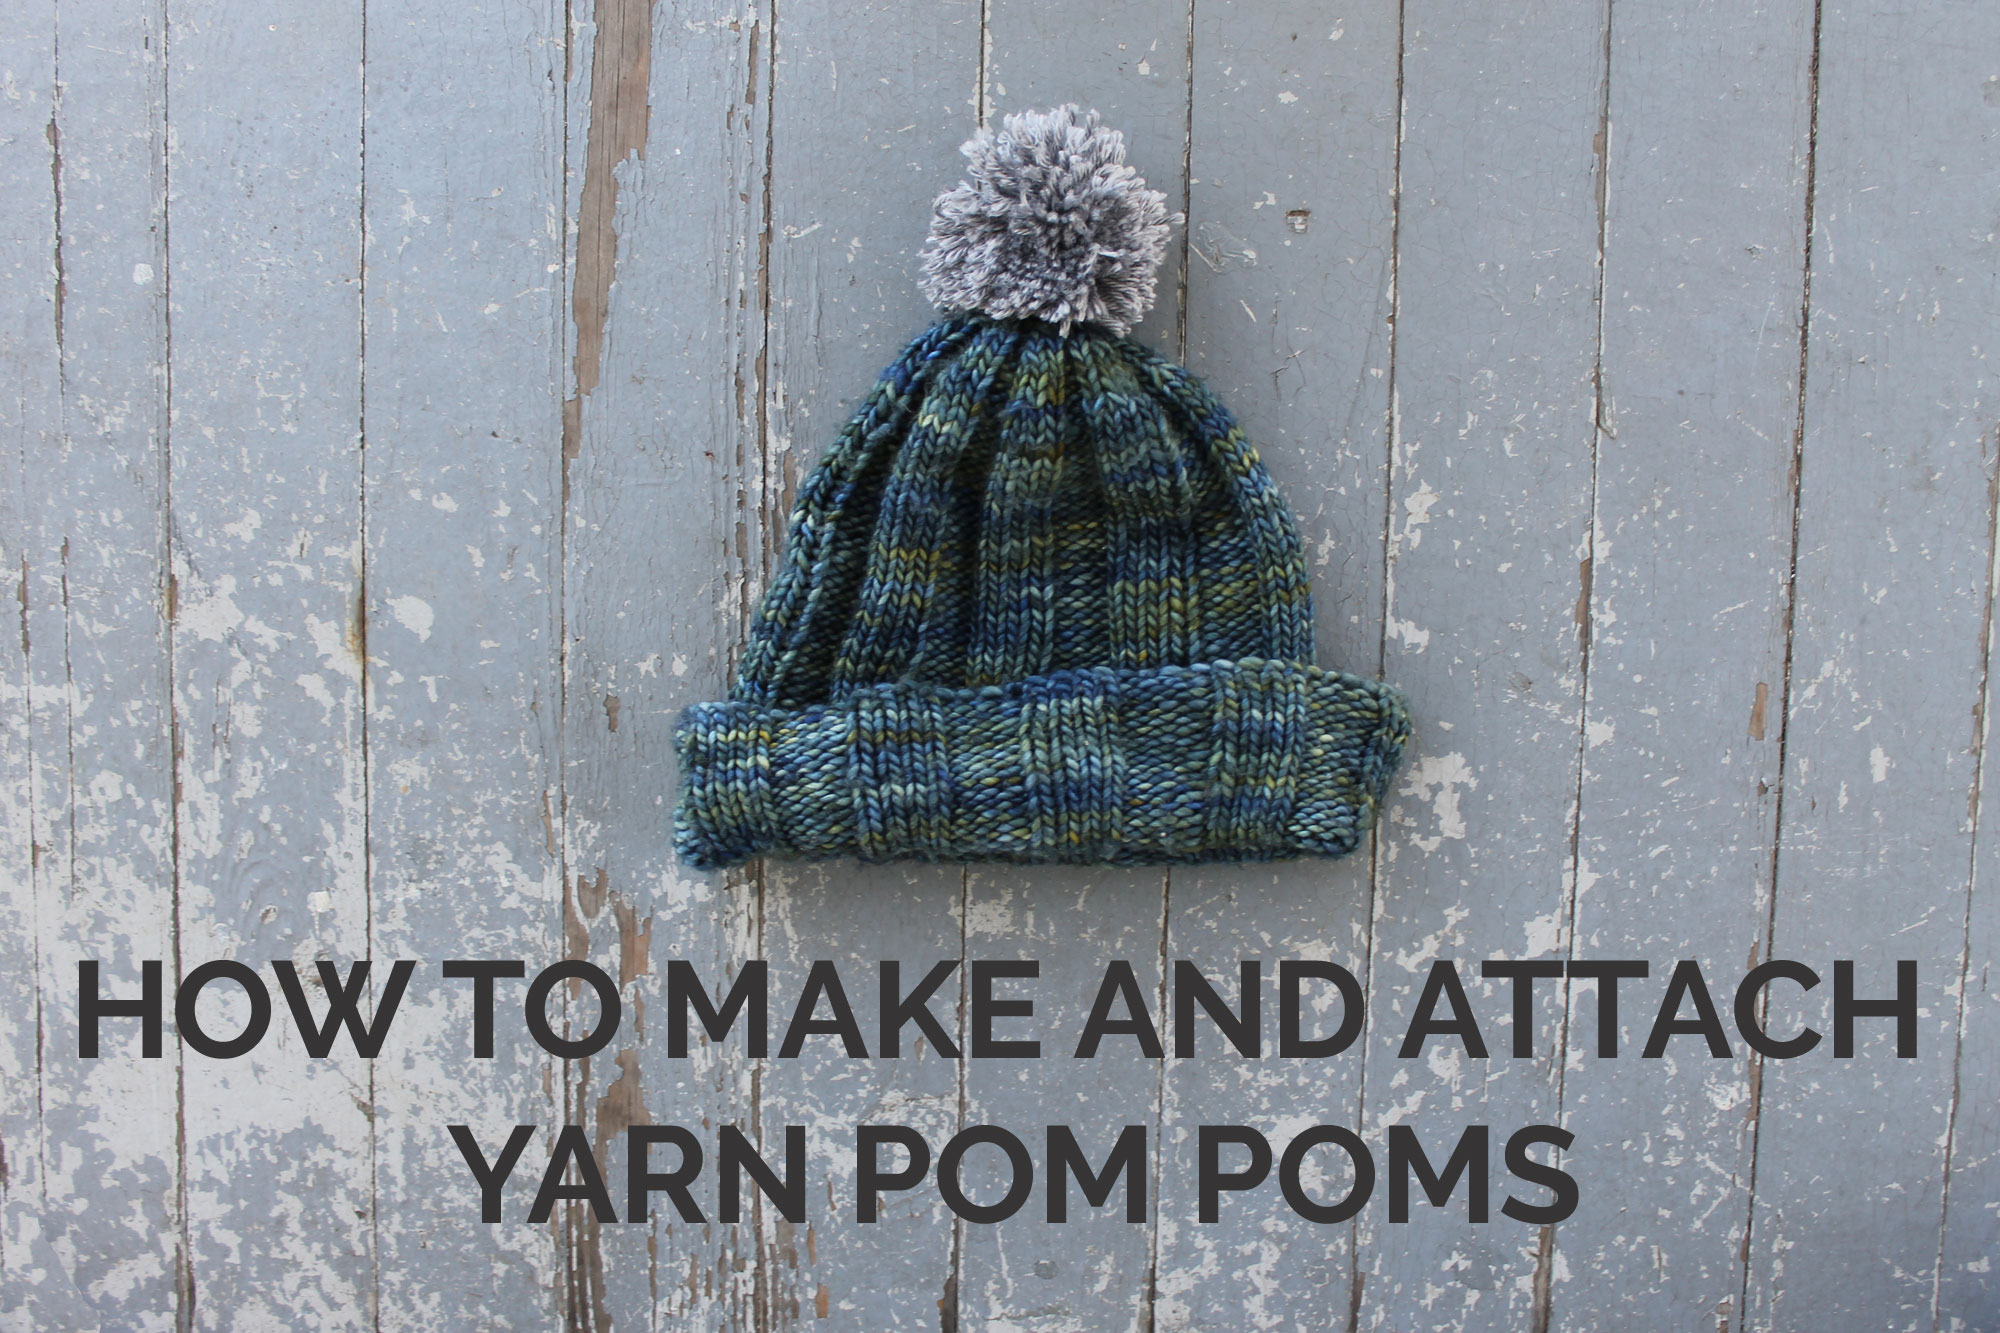 How to Make and Attach Yarn Pom Poms